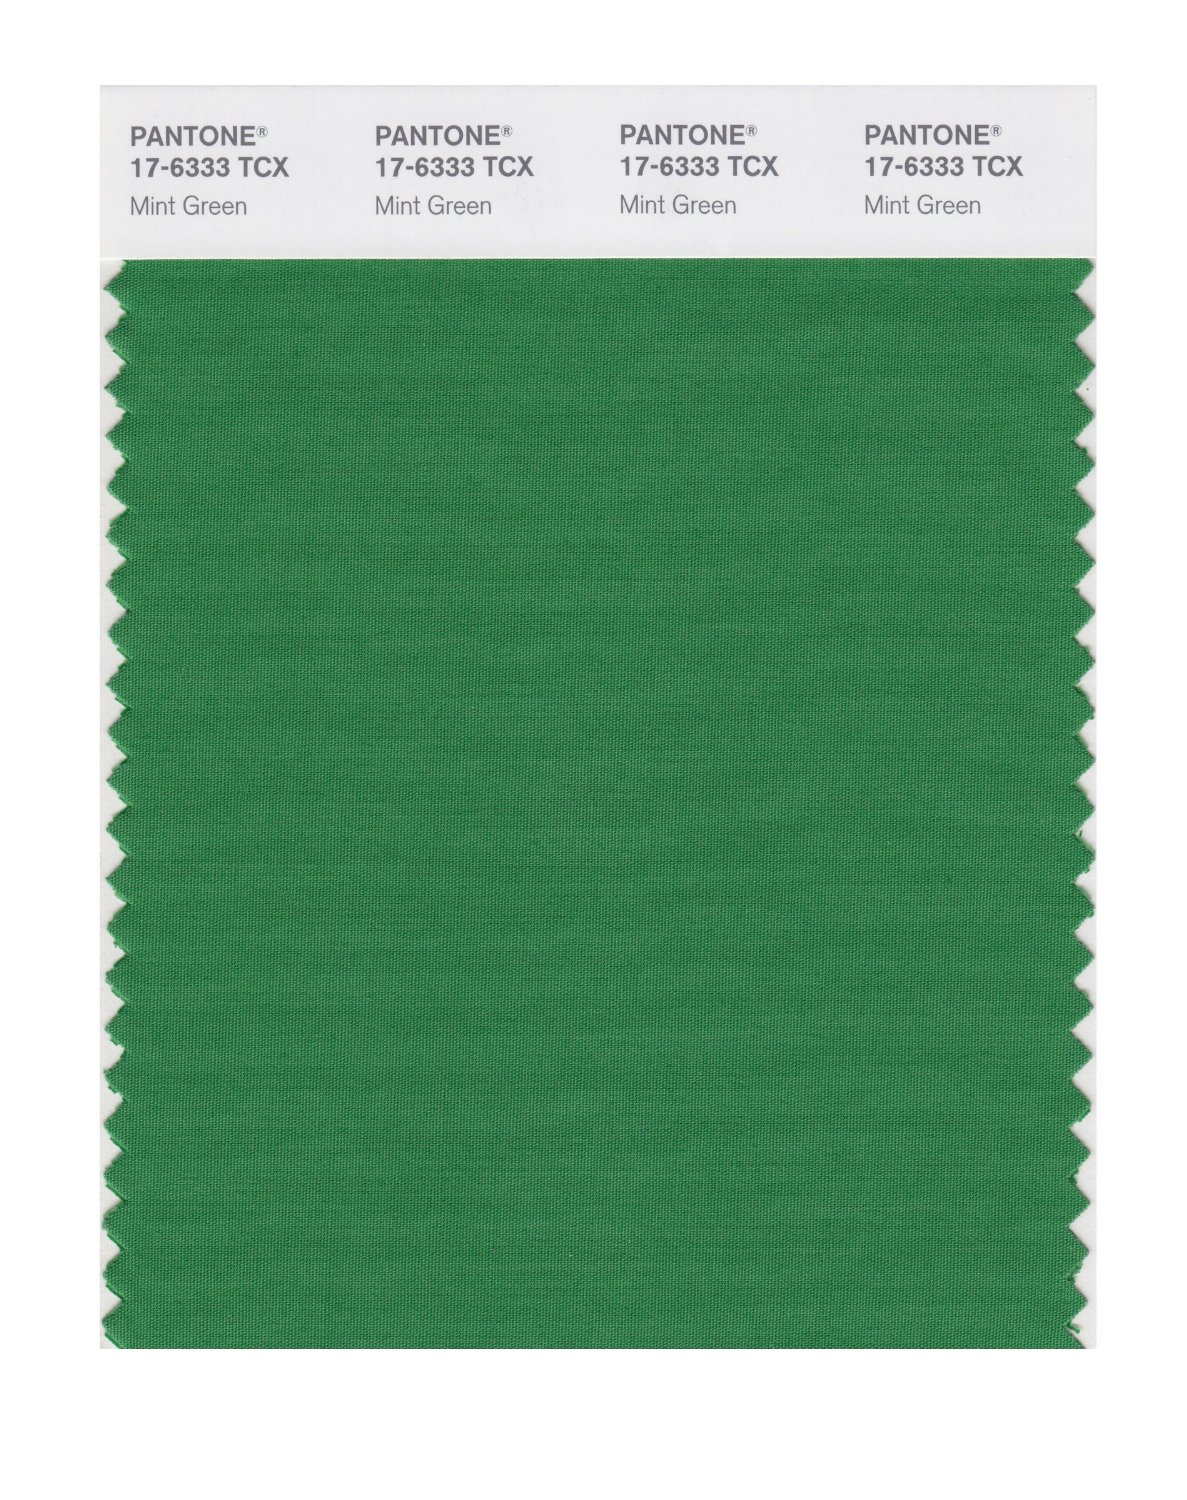 Pantone Smart Swatch 17-6333 Mint Green